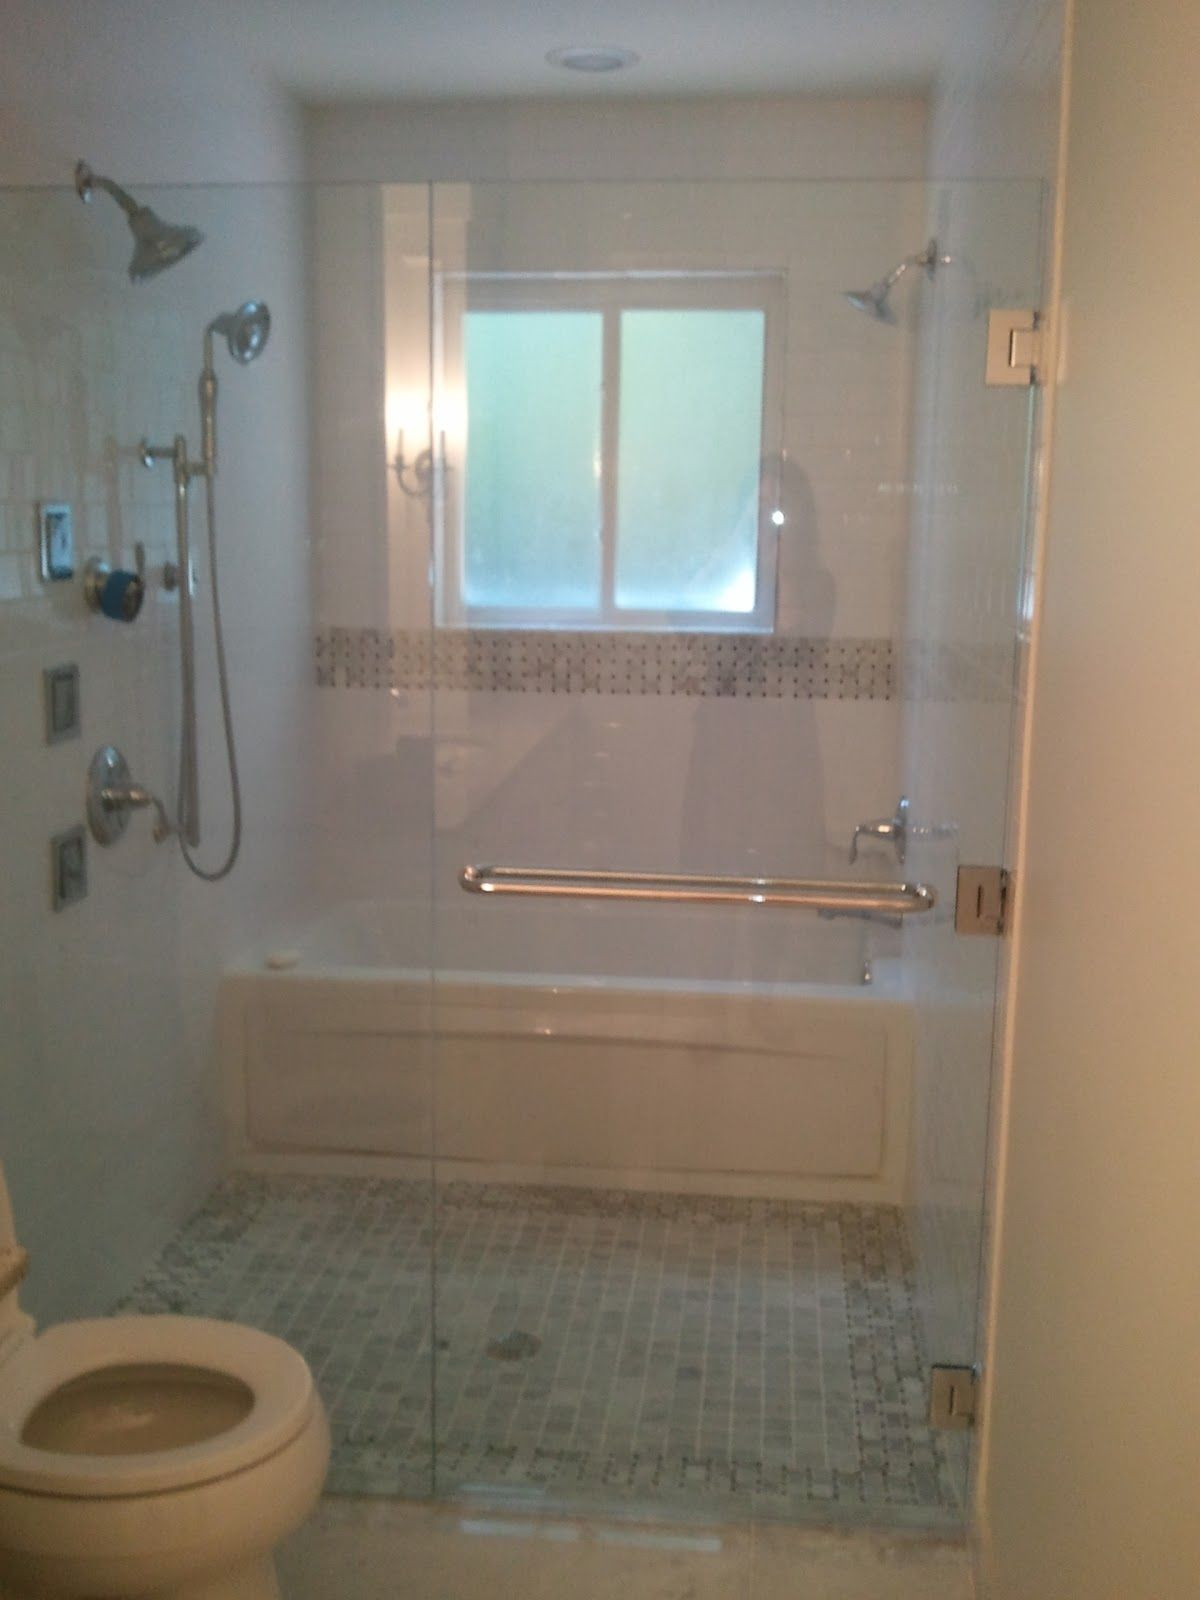 tub shower conversion bathroom remodel products bathtubs tub shower conversion bathroom remodel products bathtubs showers spas whirlpools walk